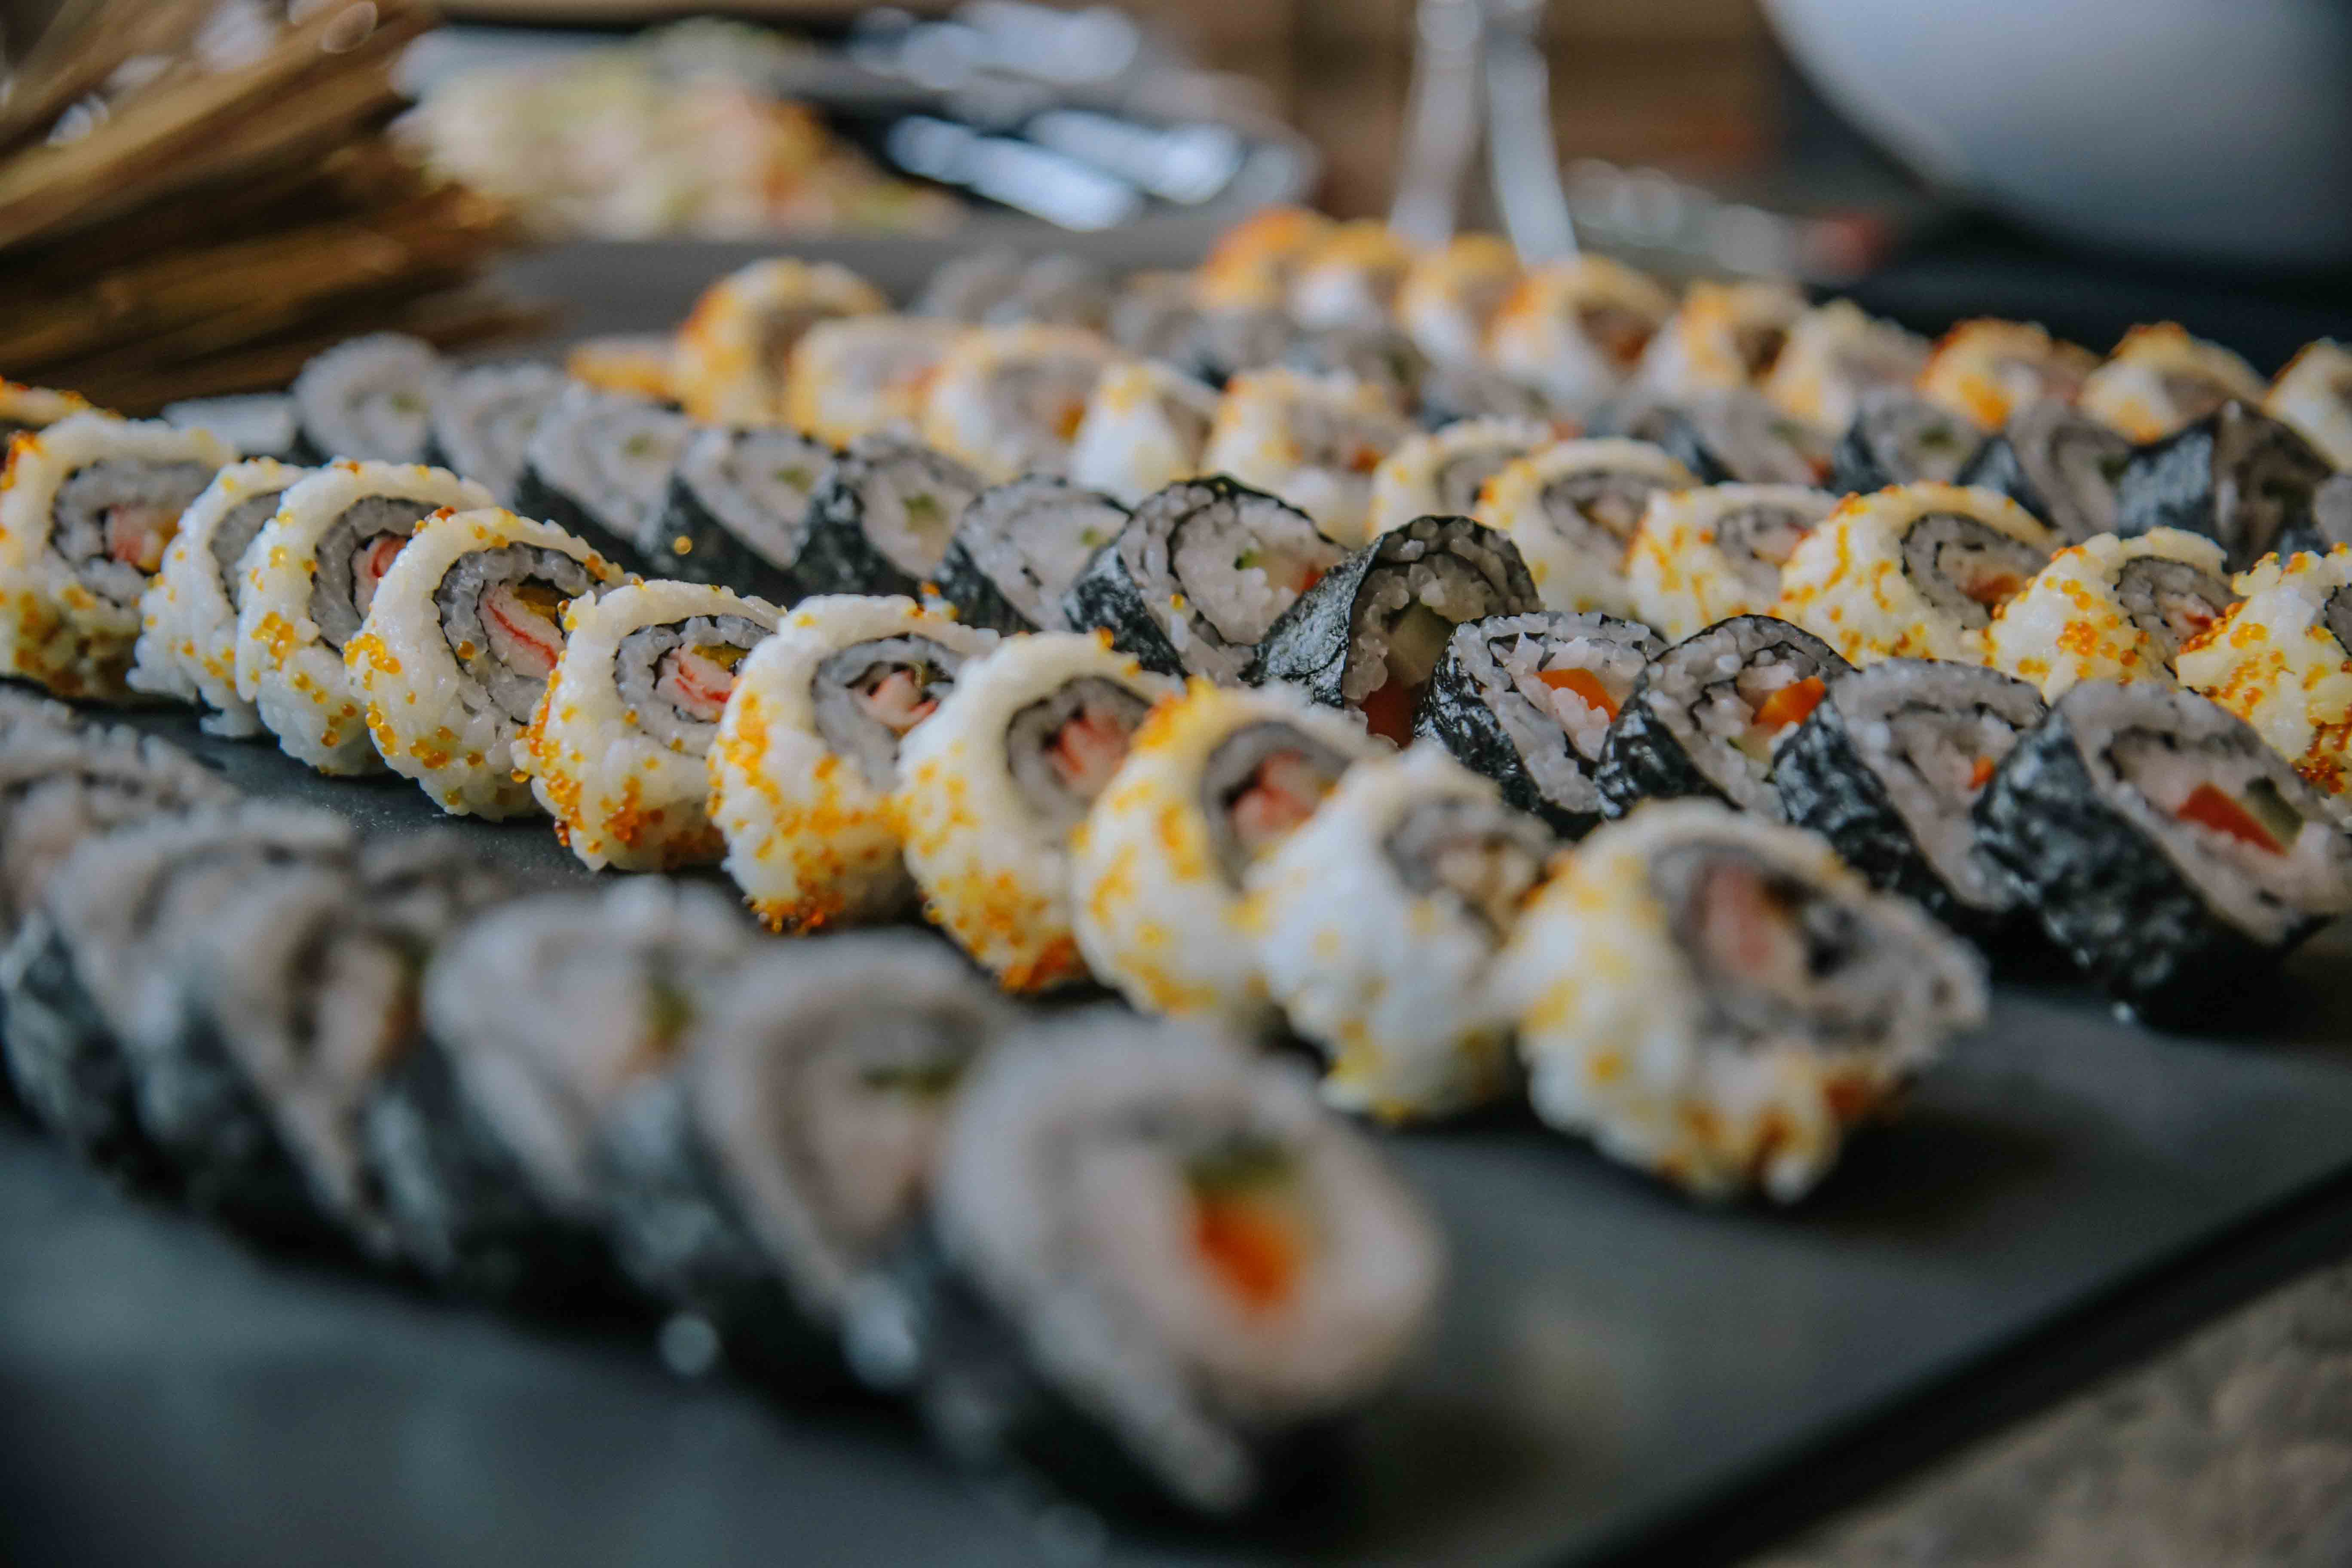 Sushi rolls in the antipasti section. Photo by Paolo Abad/Rappler